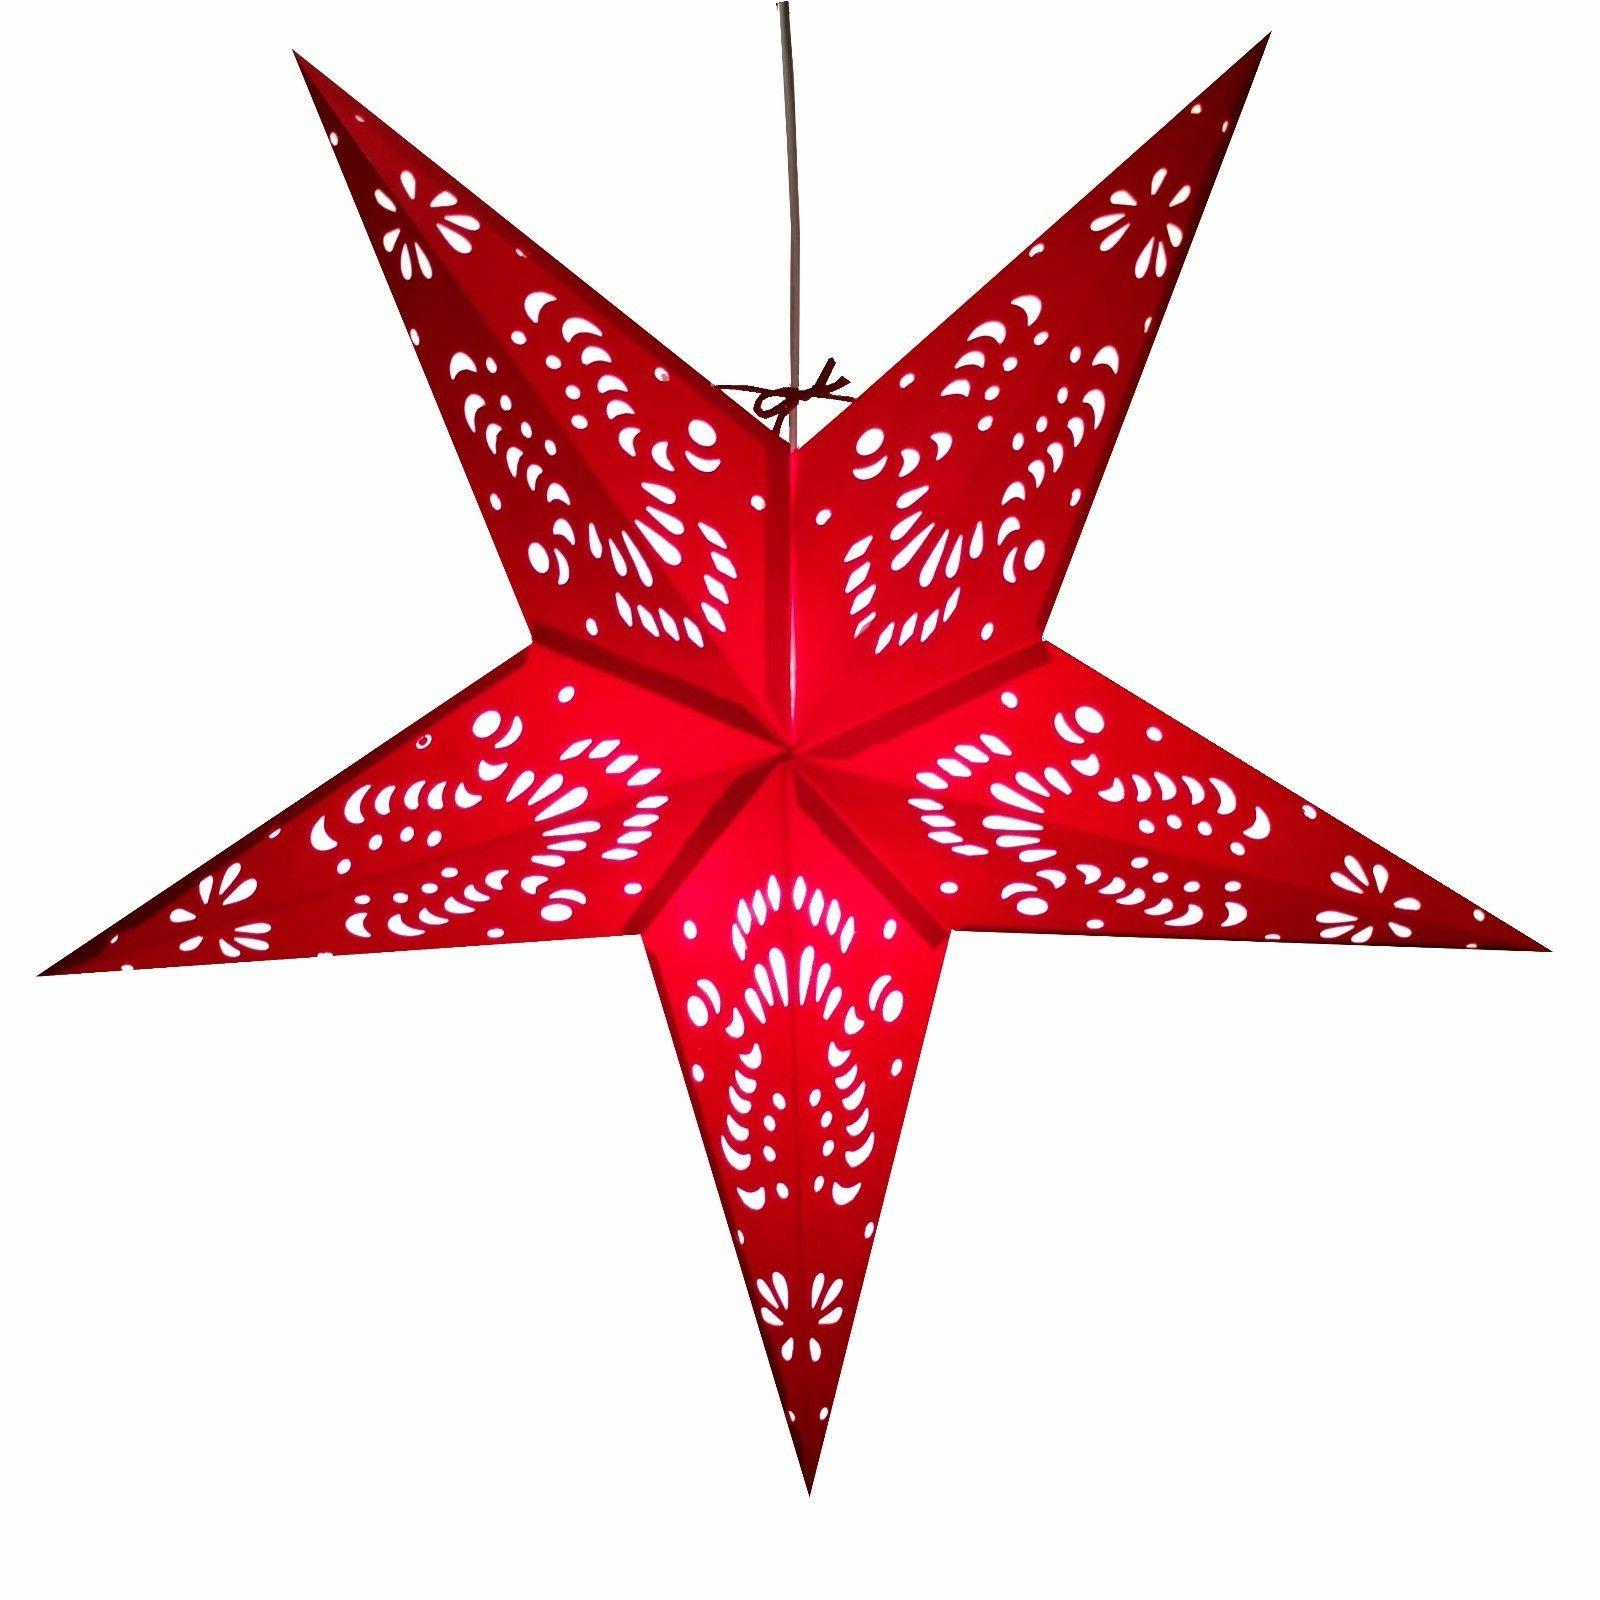 Paper Star Lights 3D Star Lantern with Cord Included